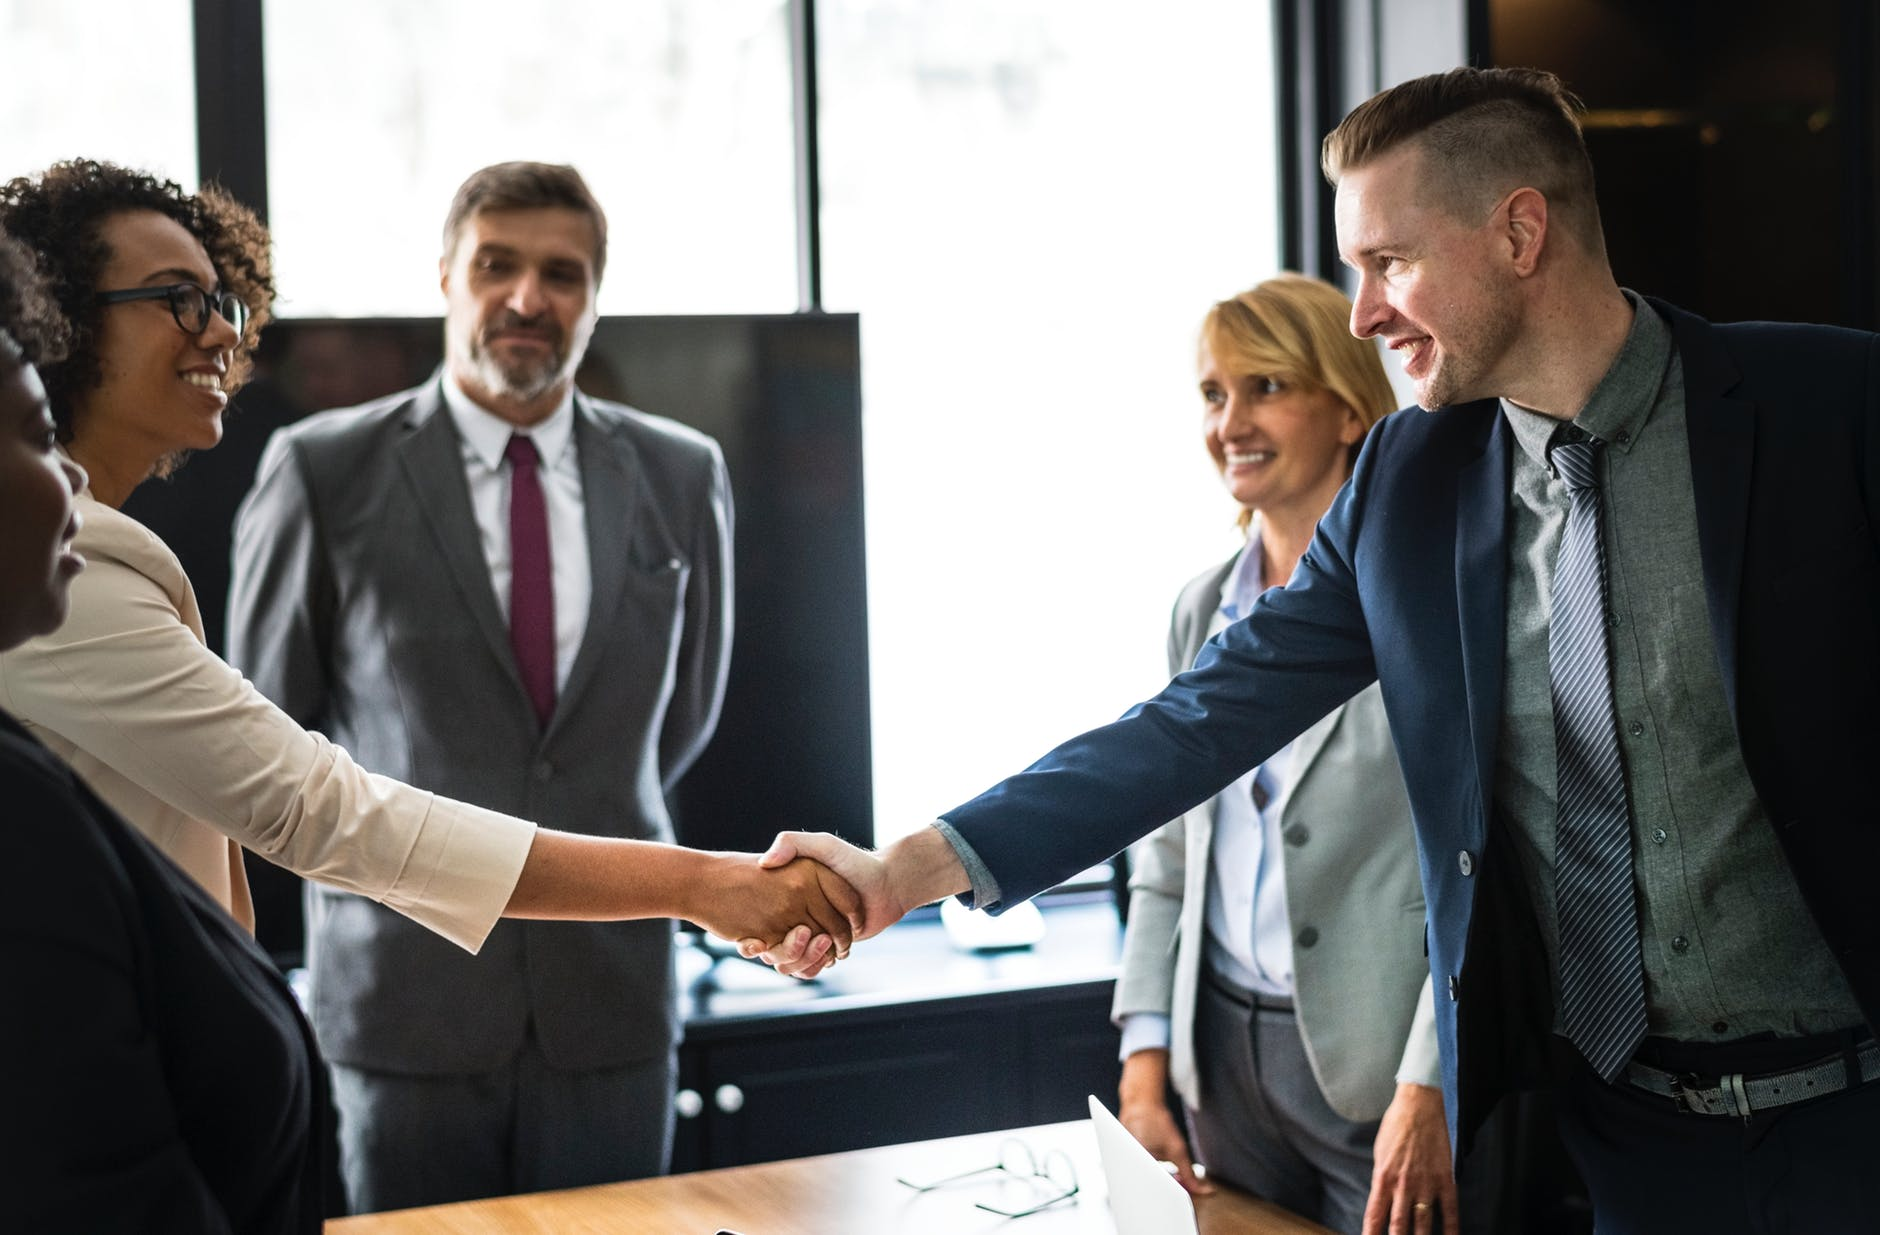 Business team members shaking hands